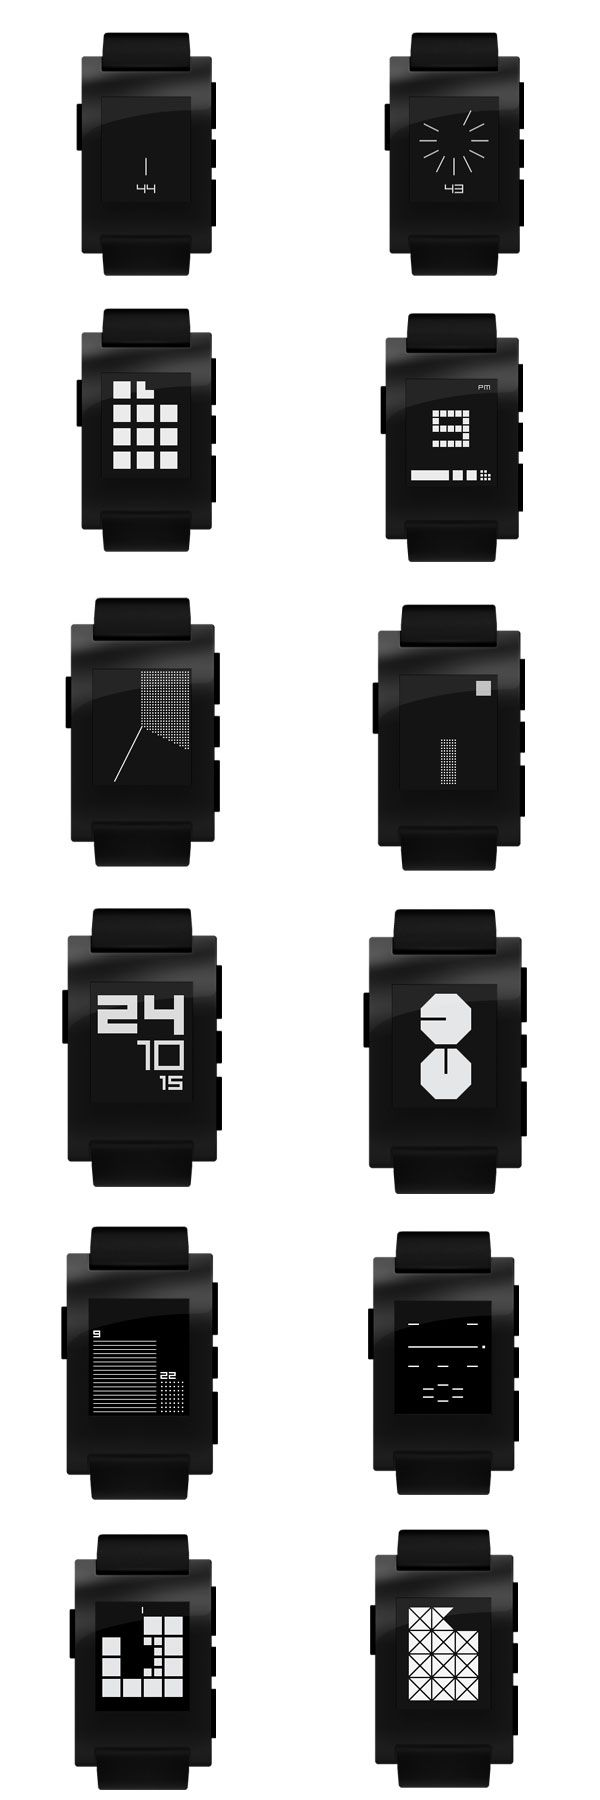 "ttmm - Watch Collection by Albert Salamon  - The ""ttmm"" collection of wristwatch apps was designed for specifically for smartwatches with 144×168 pixel screens such as Pebble and Kreyos. 15 different face options give the wearer a multitude of stylized options, each with its own puzzling way of displaying the time. 